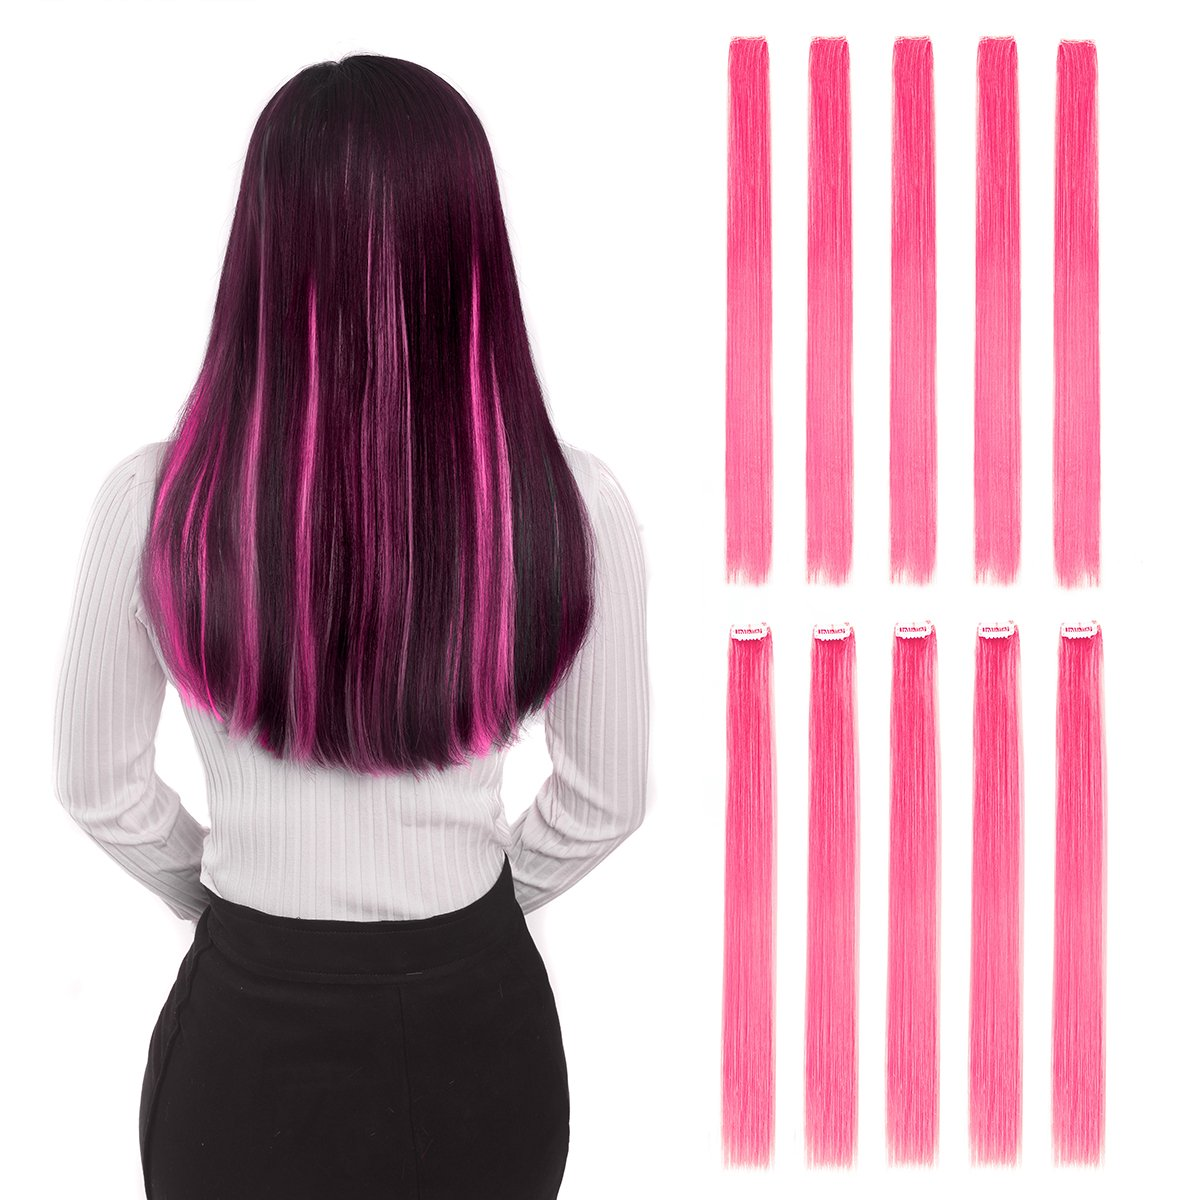 Colored Clip In Hair Extensions 20 10pcs Straight Fashion Hairpieces For Party Highlights Pink